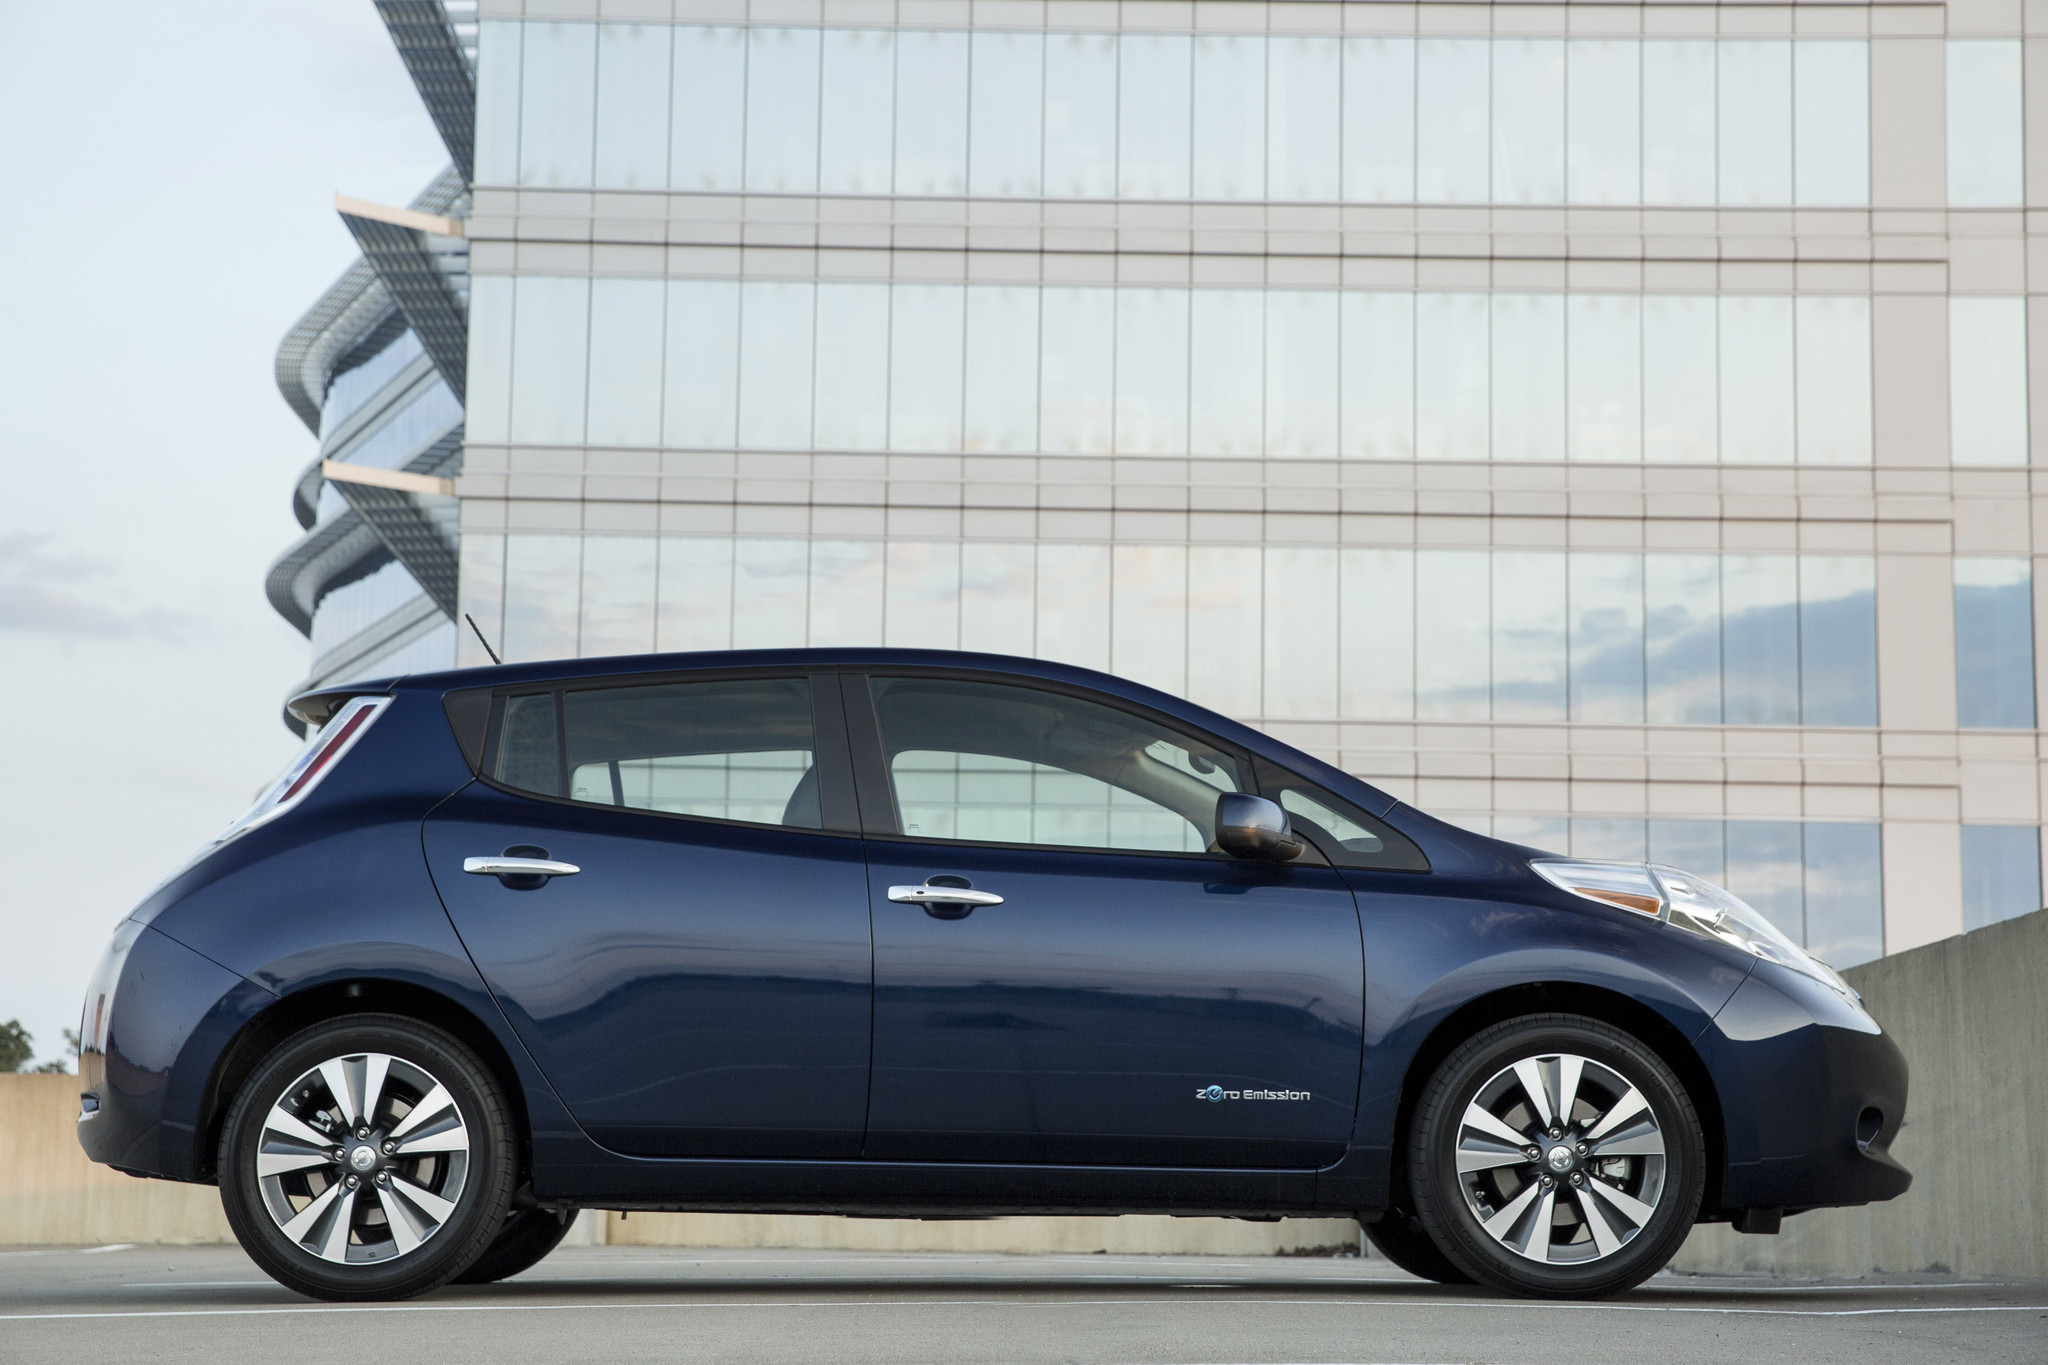 Bigger battery gives new nissan leaf 107 miles on a single charge la times